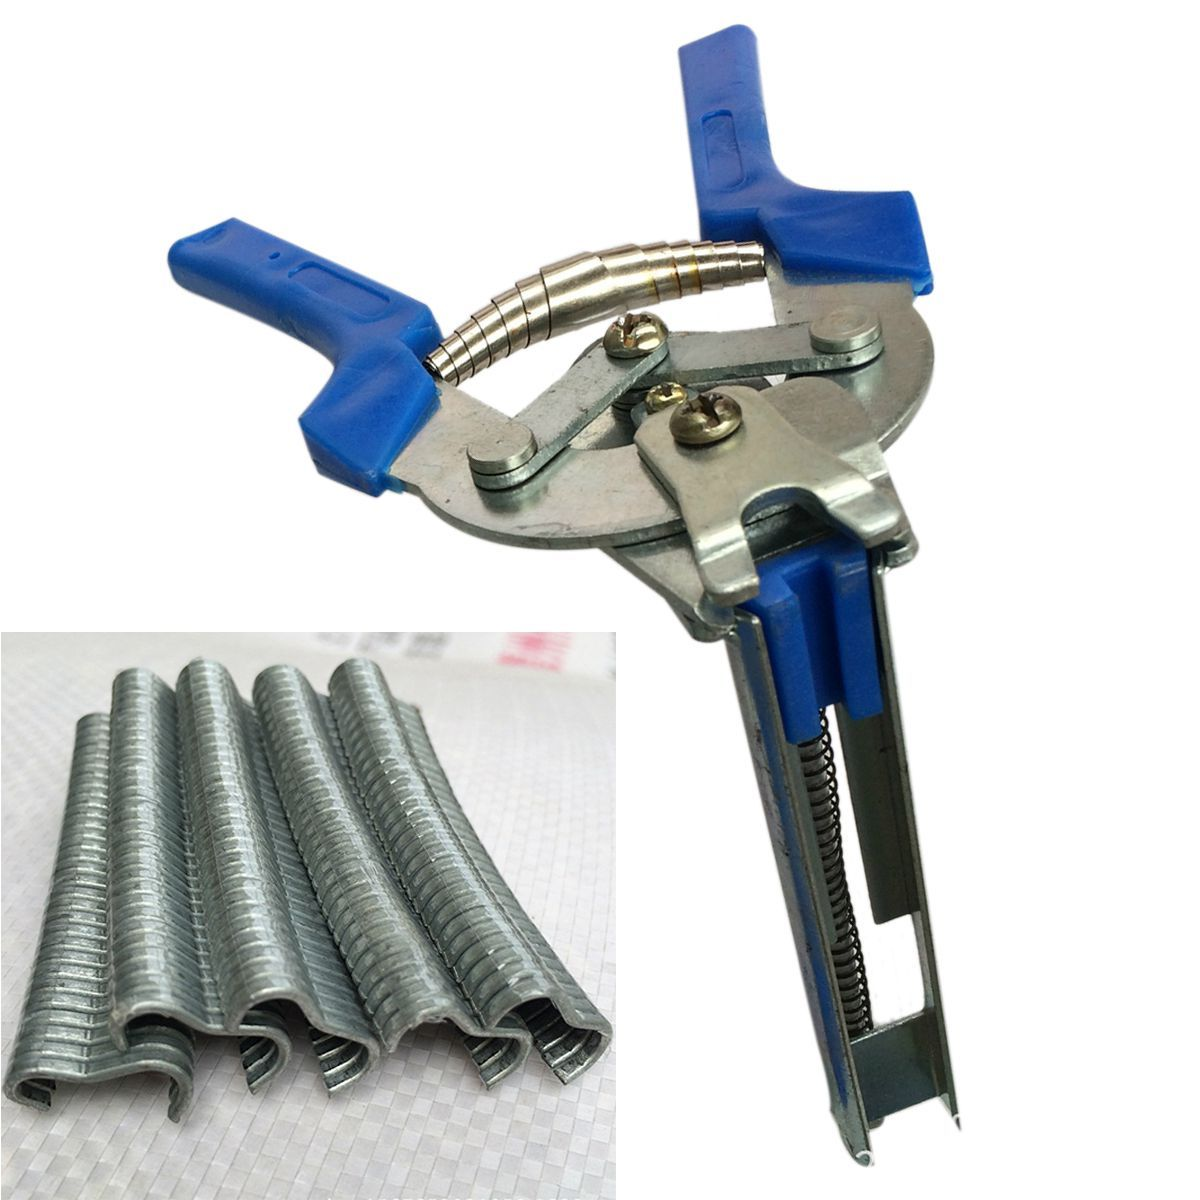 HHO 1pc Hog Ring Plier Tool and 600pcs M Clips Chicken Mesh Cage Wire Fencing Crimping Solder Joint Welding Repair Hand Tools